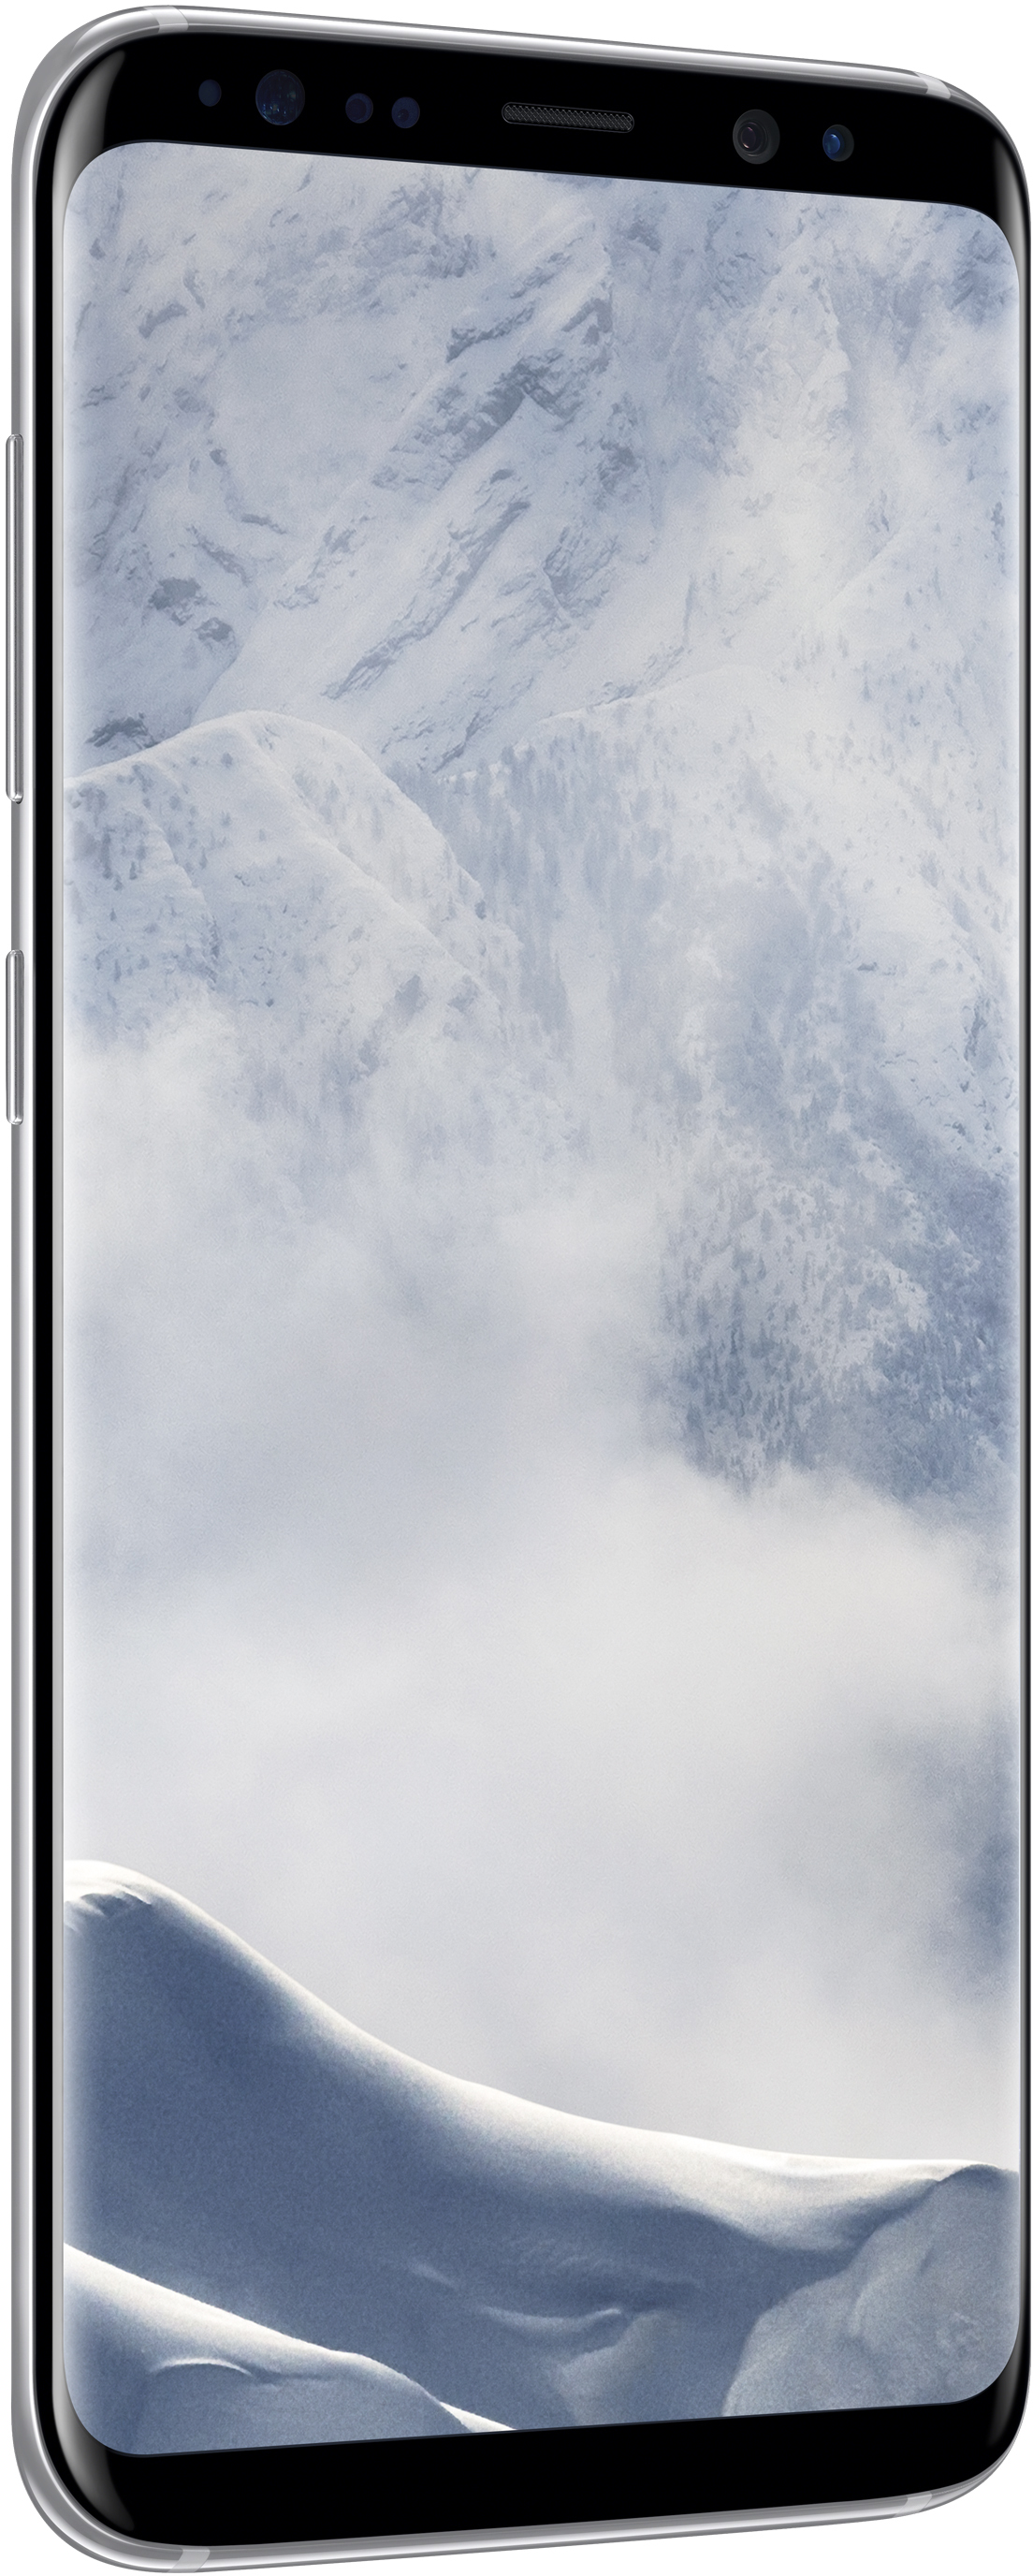 Galaxy S8, 64GB, Arctic Silver